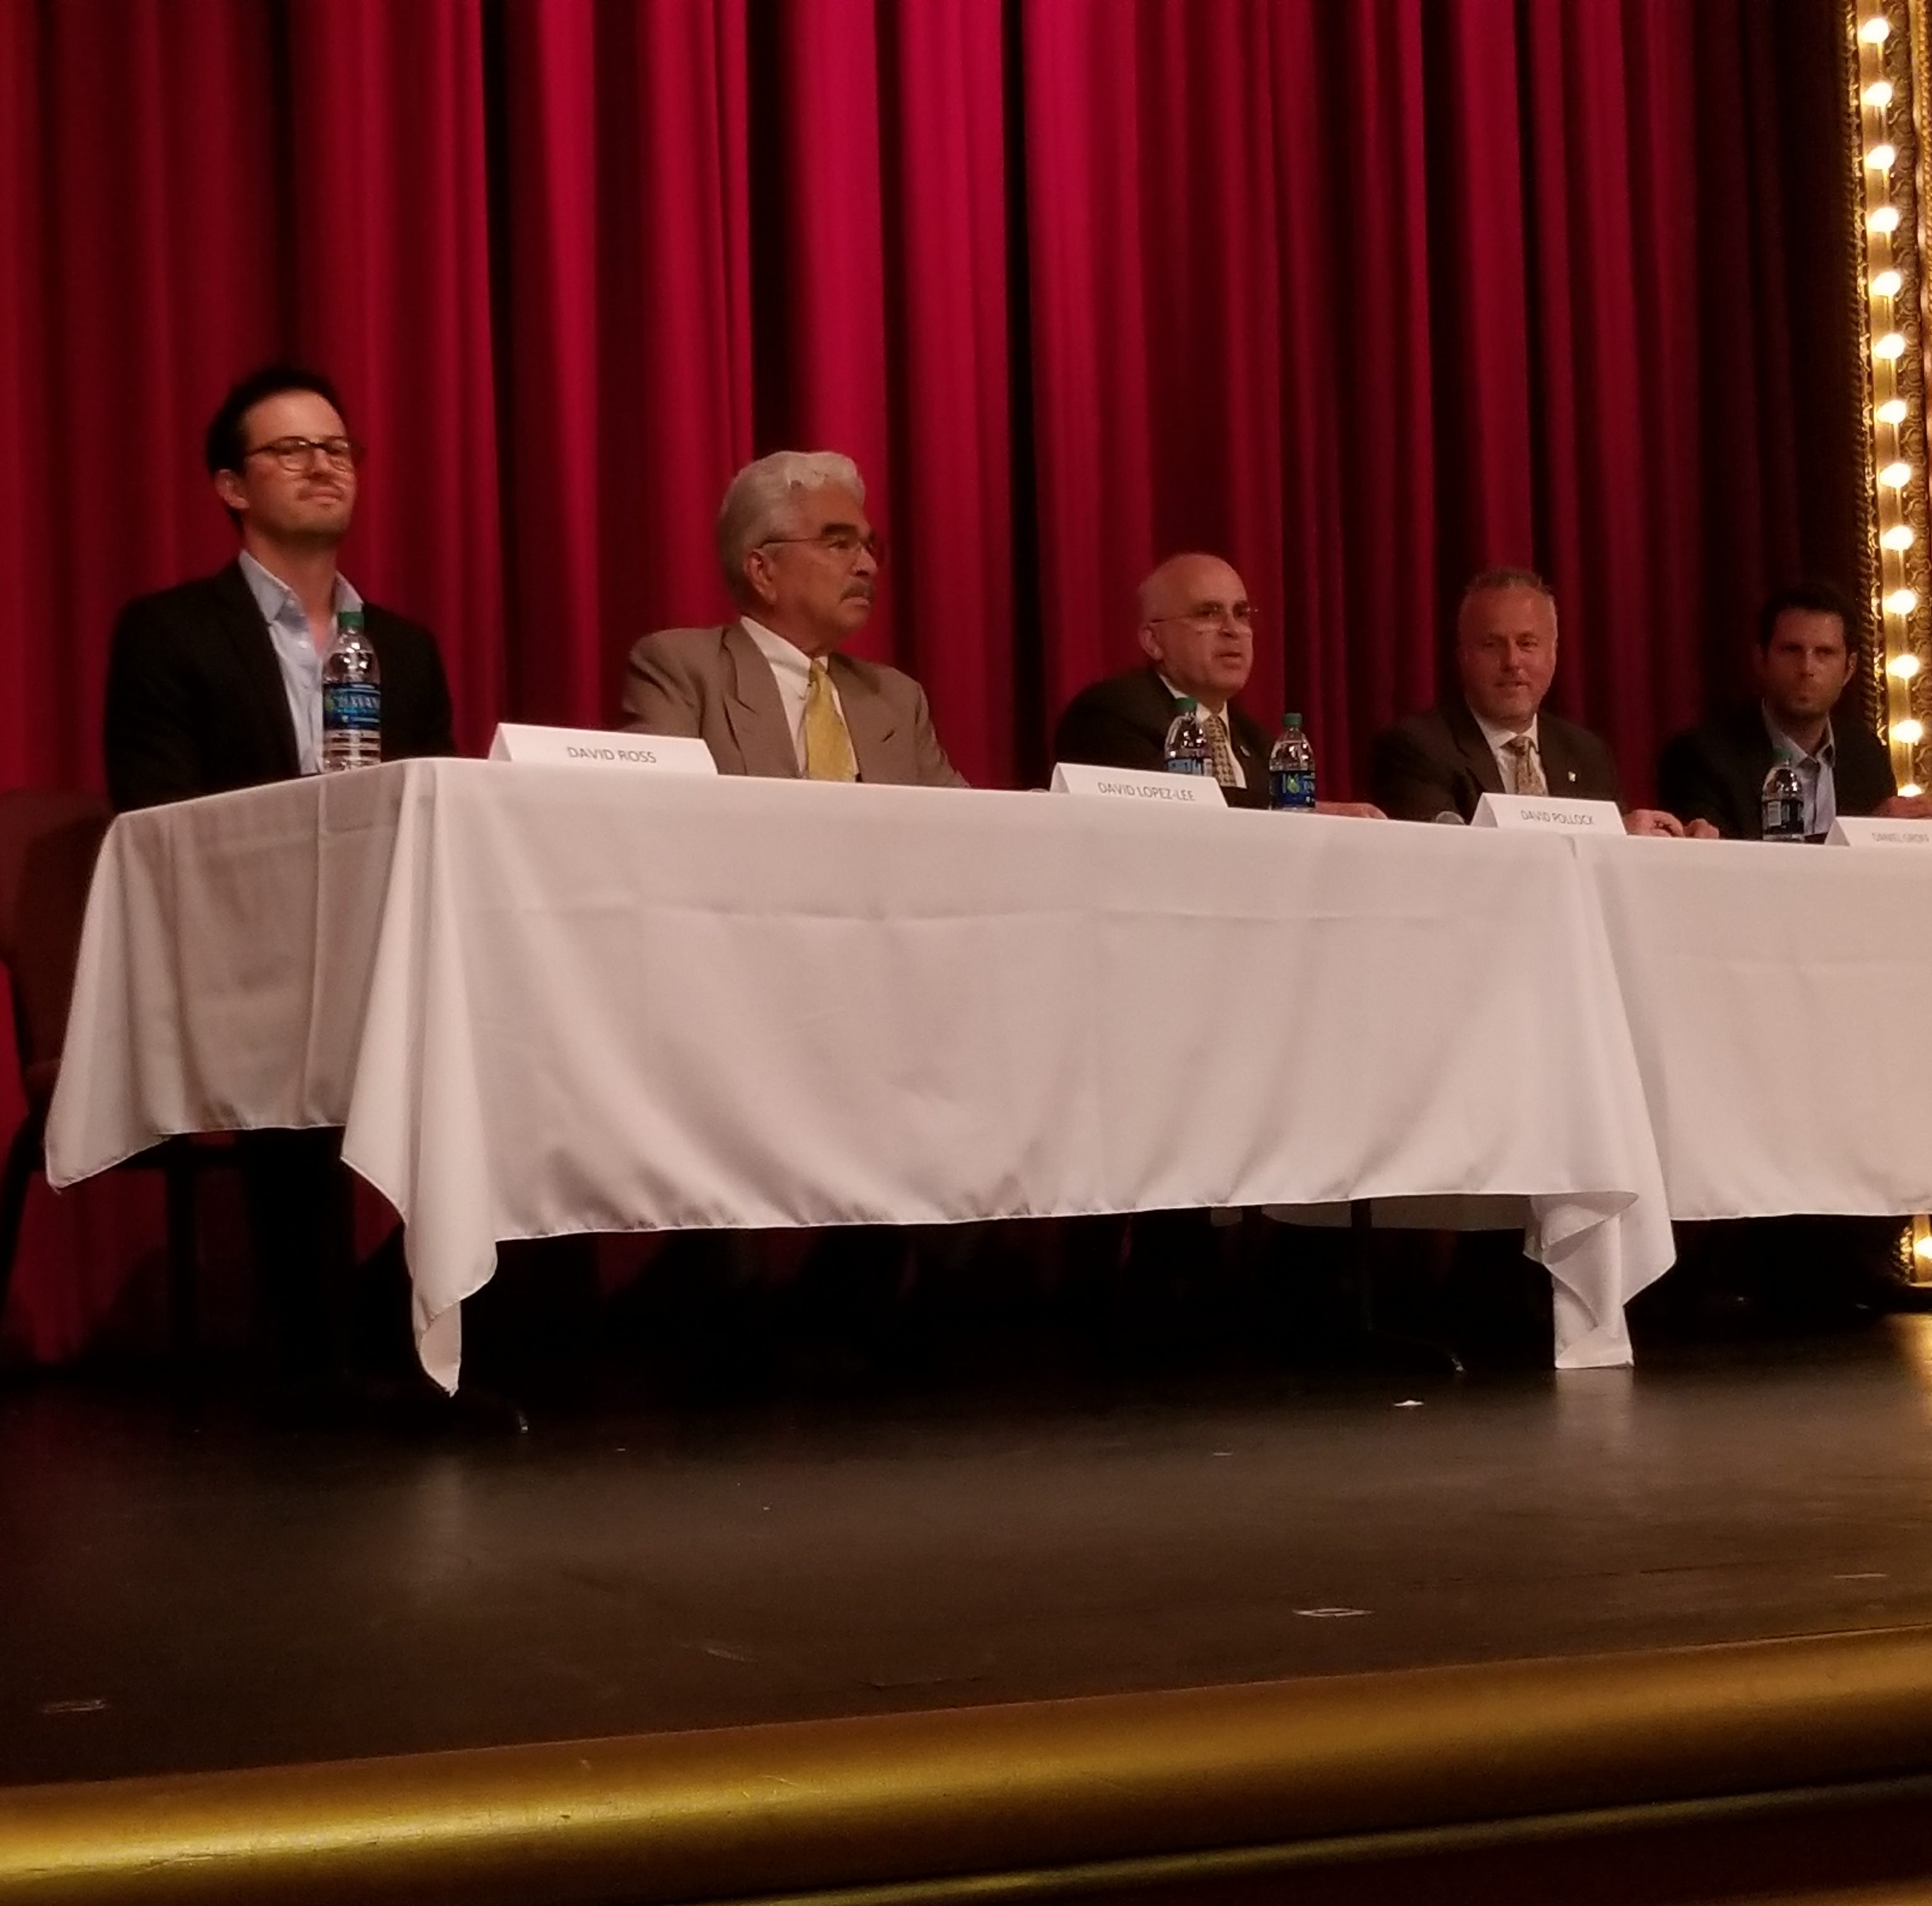 Mixed-use development or not, candidates for Moorpark City Council weigh in during forum